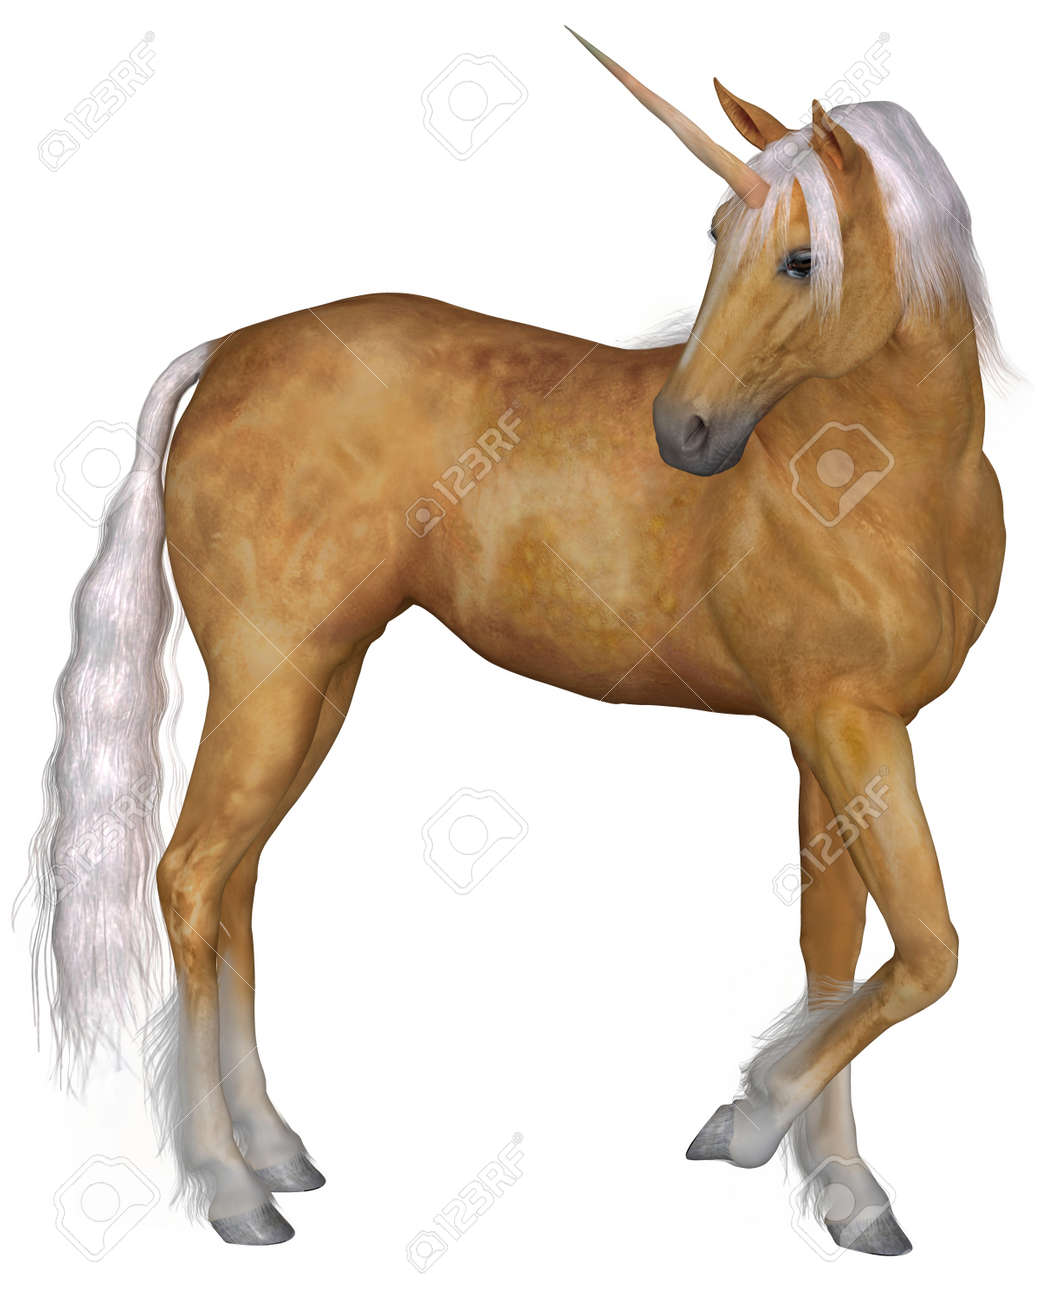 How Many Horns Does A Unicorn Have